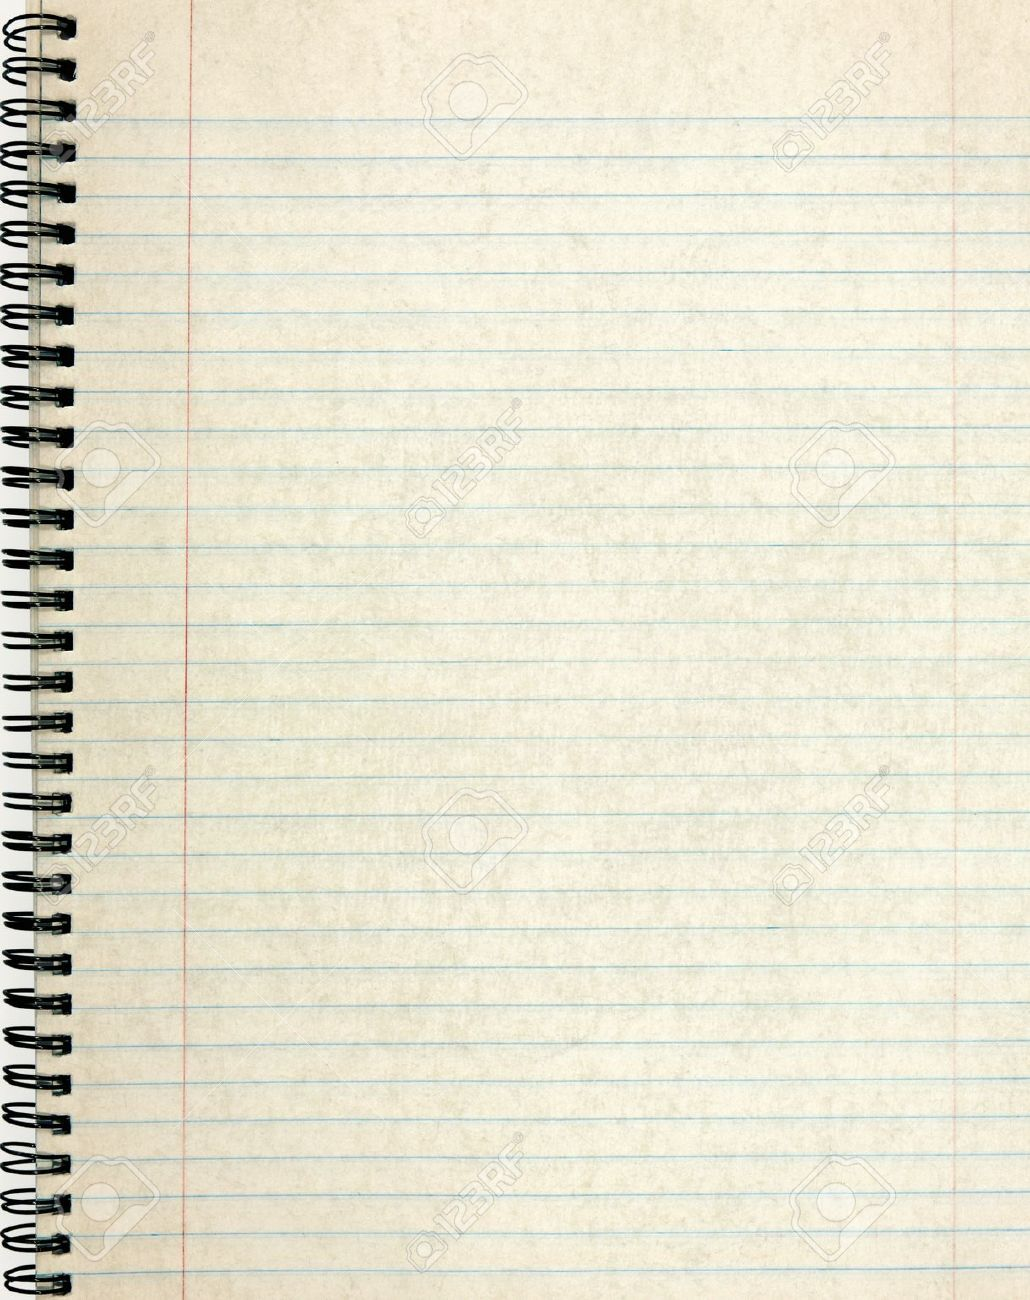 Old Notebook Page Lined Paper Stock Photo